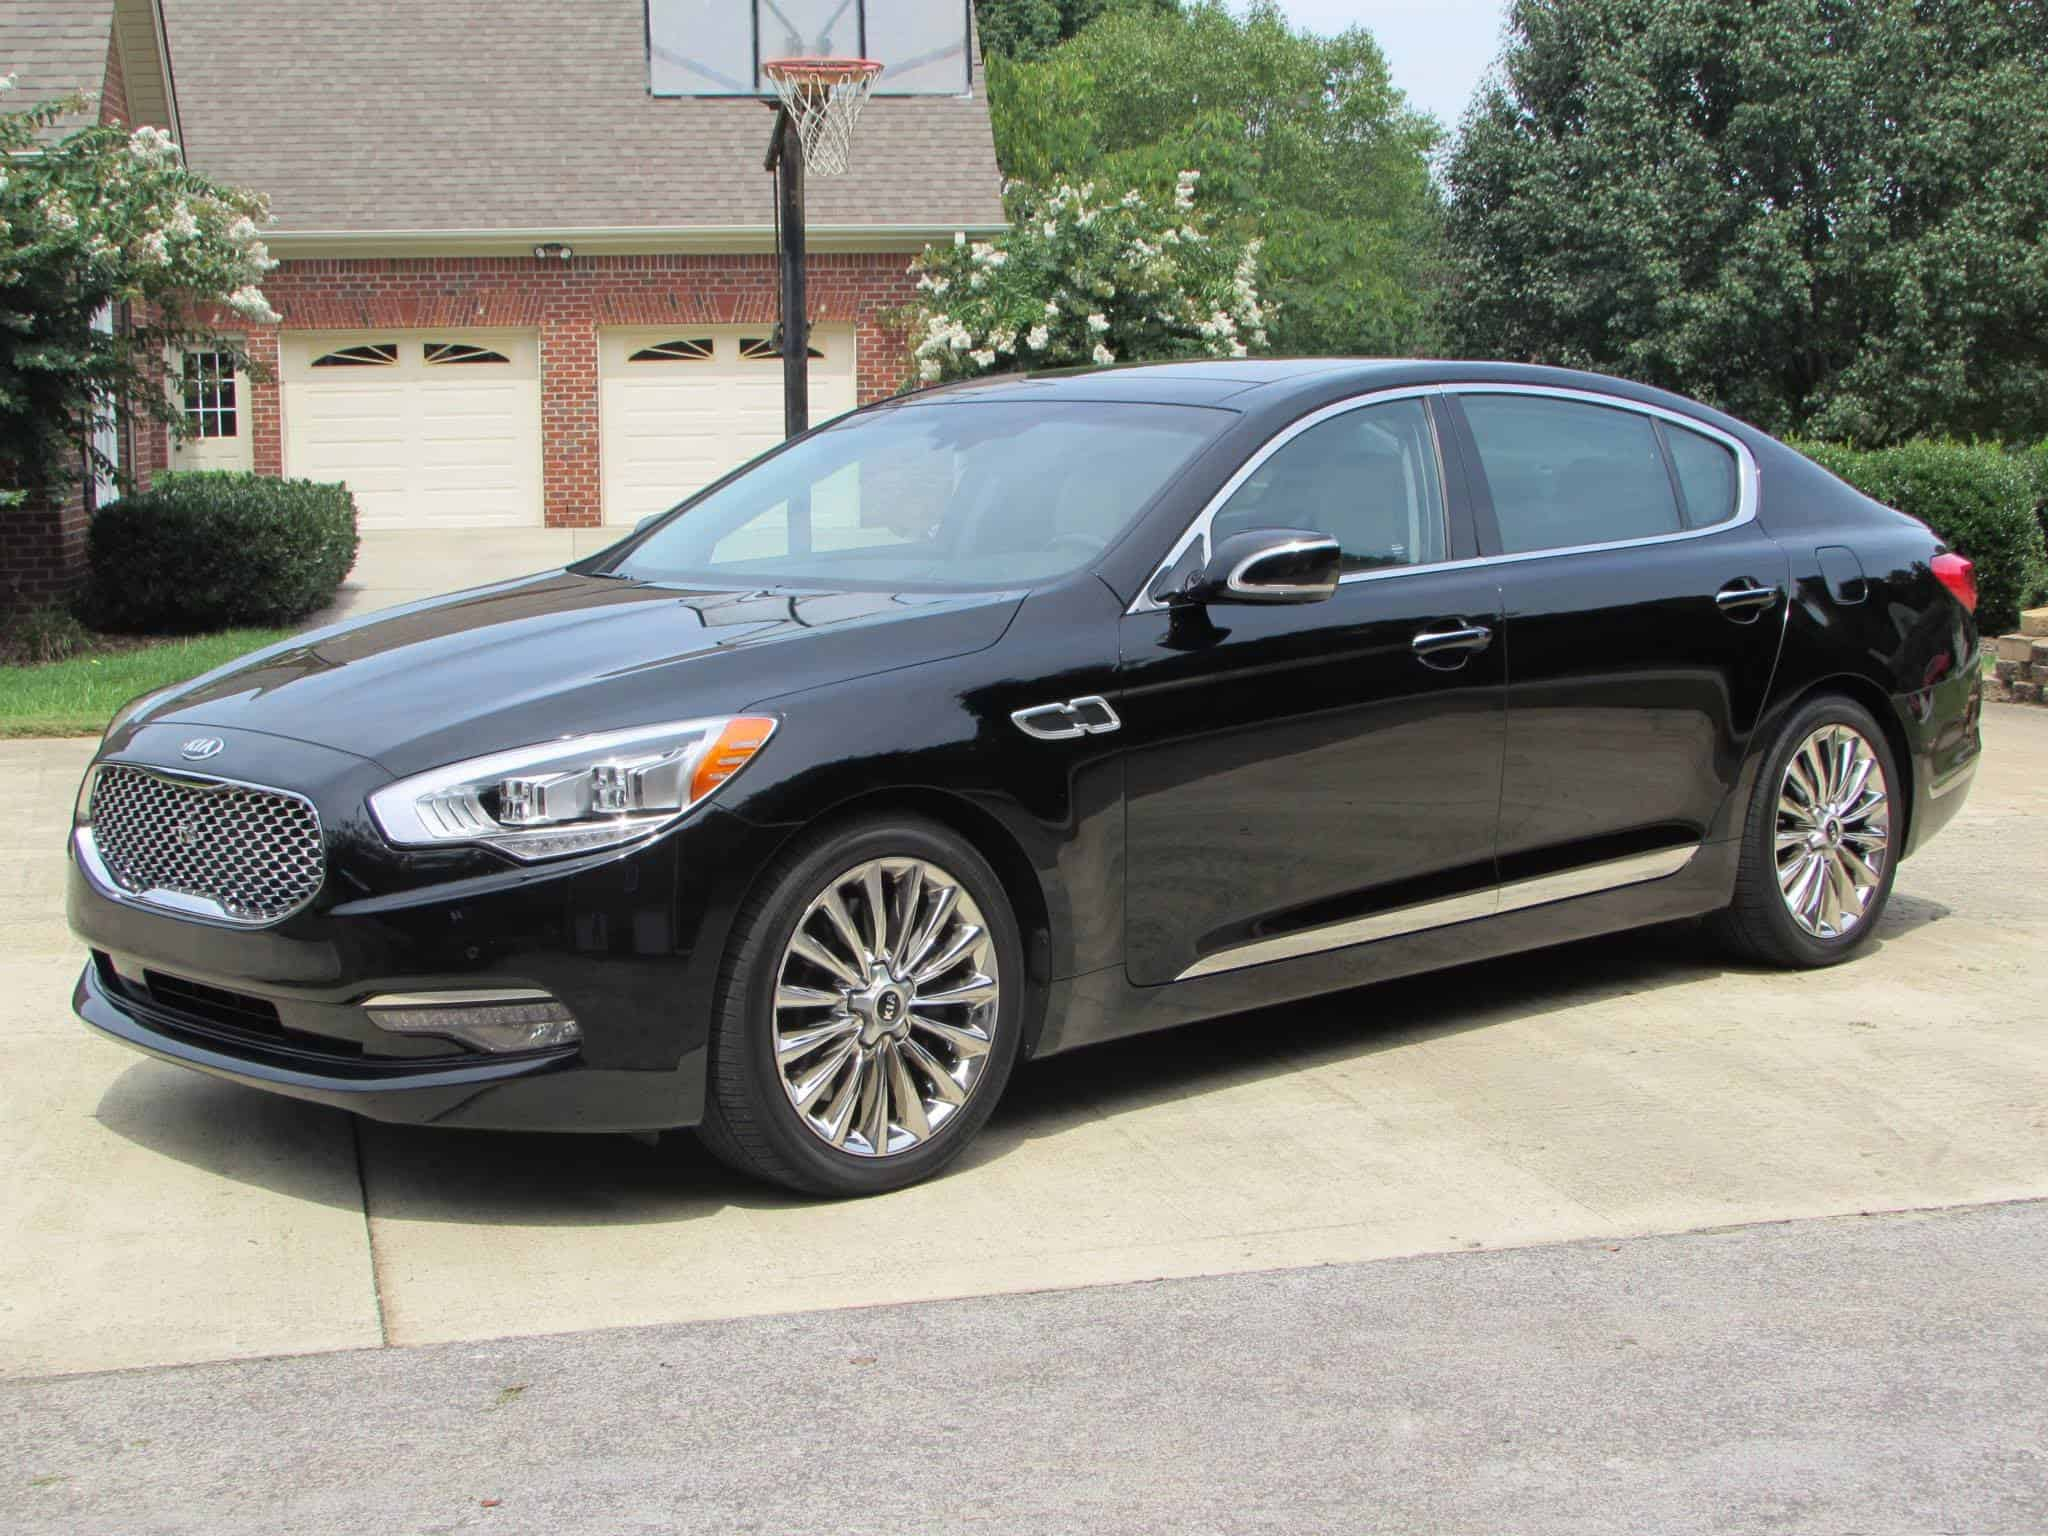 2015 Kia K900 Car Review Video